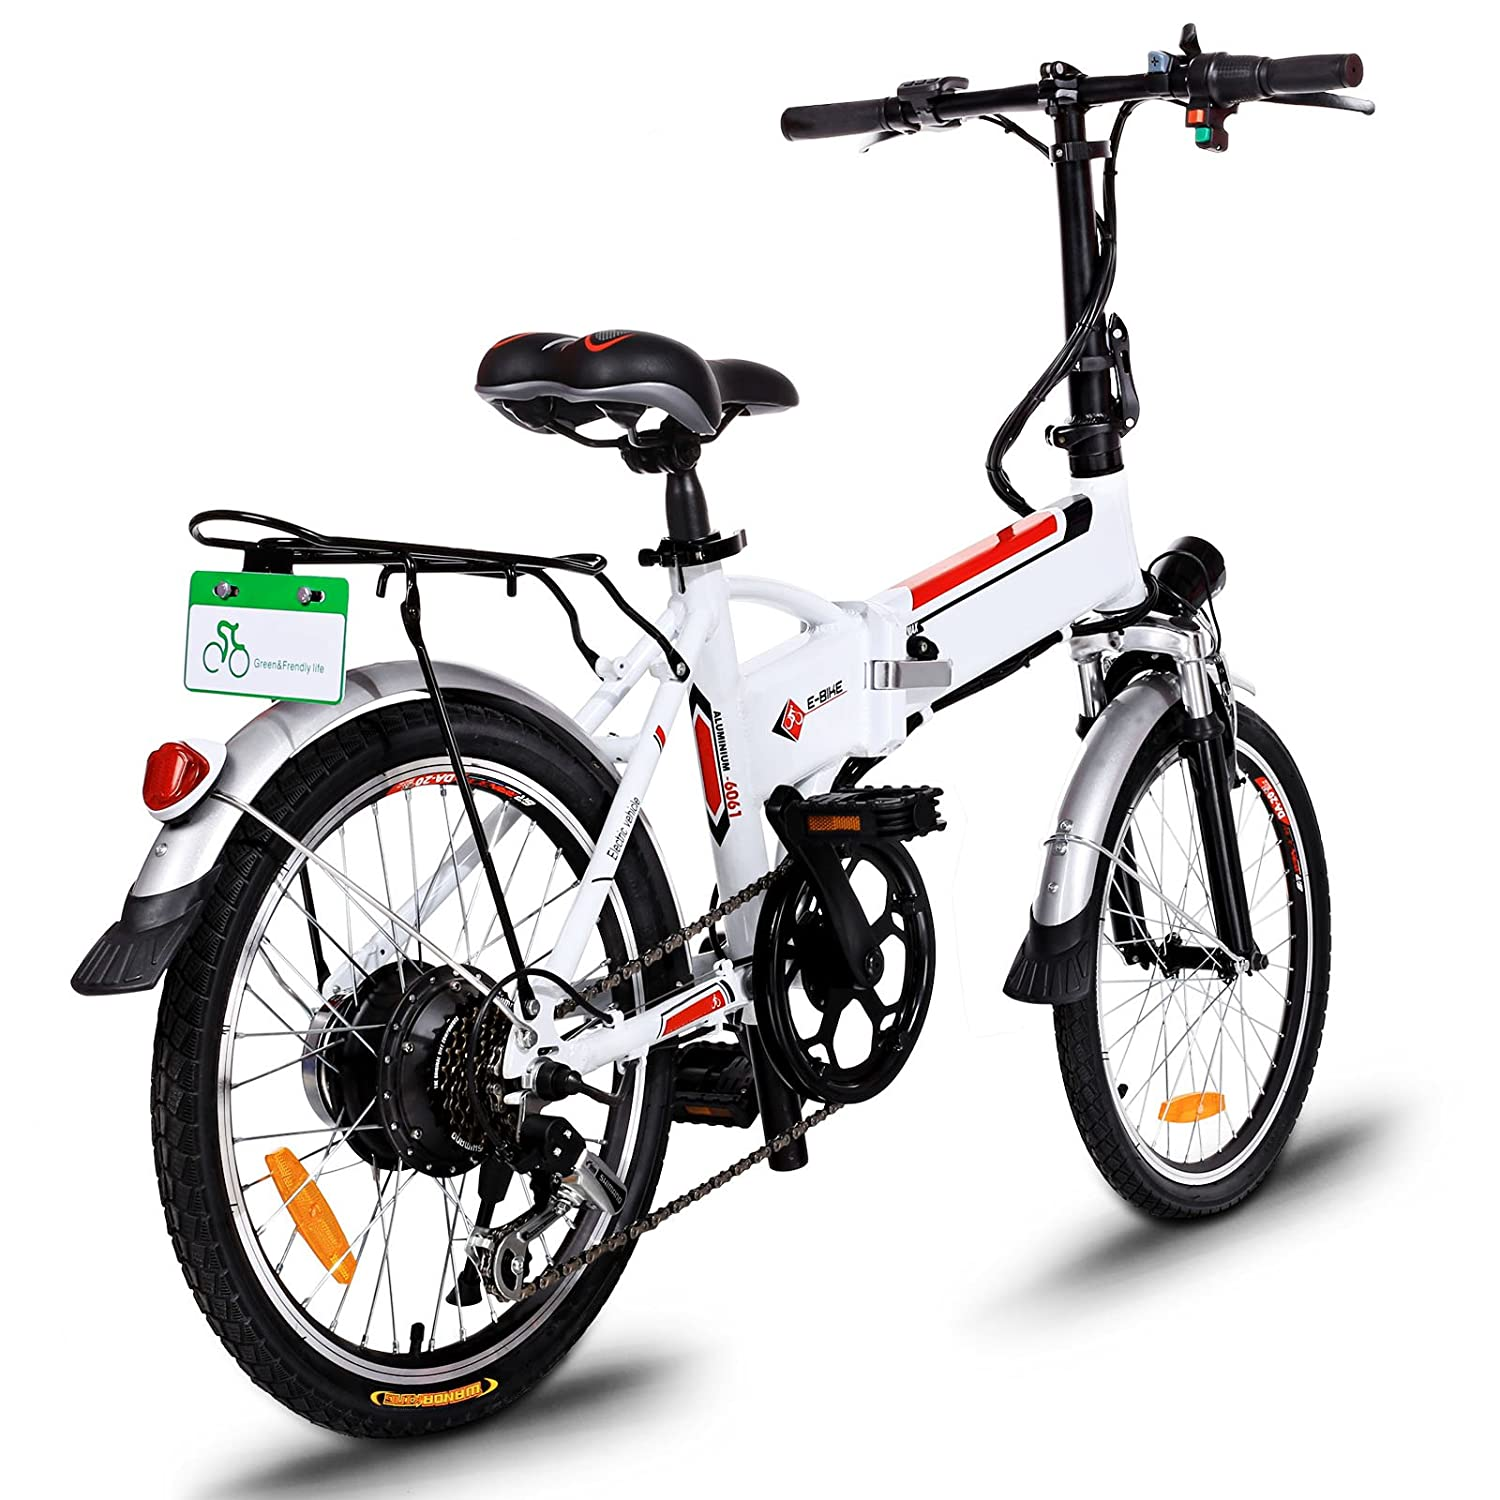 Hurbo Folding Electric Bike with Removable 36V 8Ah Lithium-Ion Battery Lightweight and Aluminum Ebike with with 250W Powerful Motor and 7 Speed Shifter Fast Battery Charger